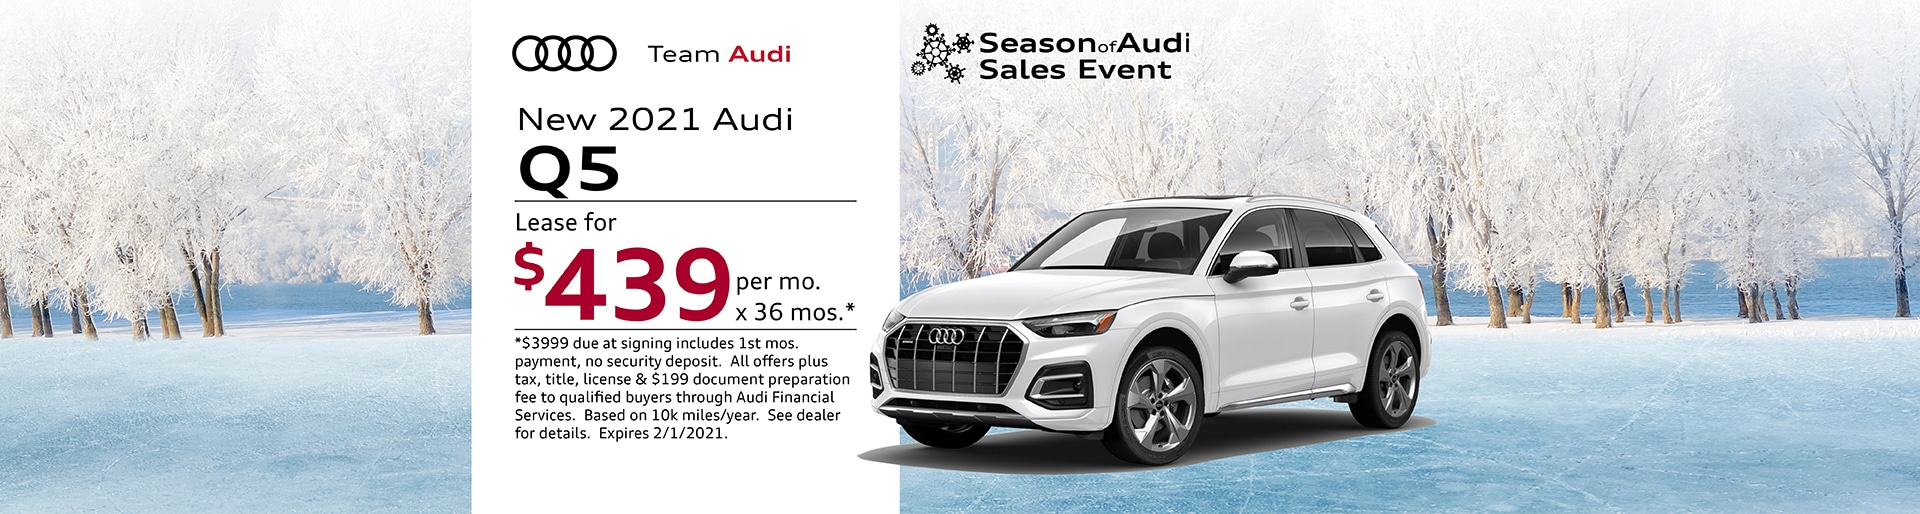 2021 Audi Q5 Special Offer | Merrillville, IN